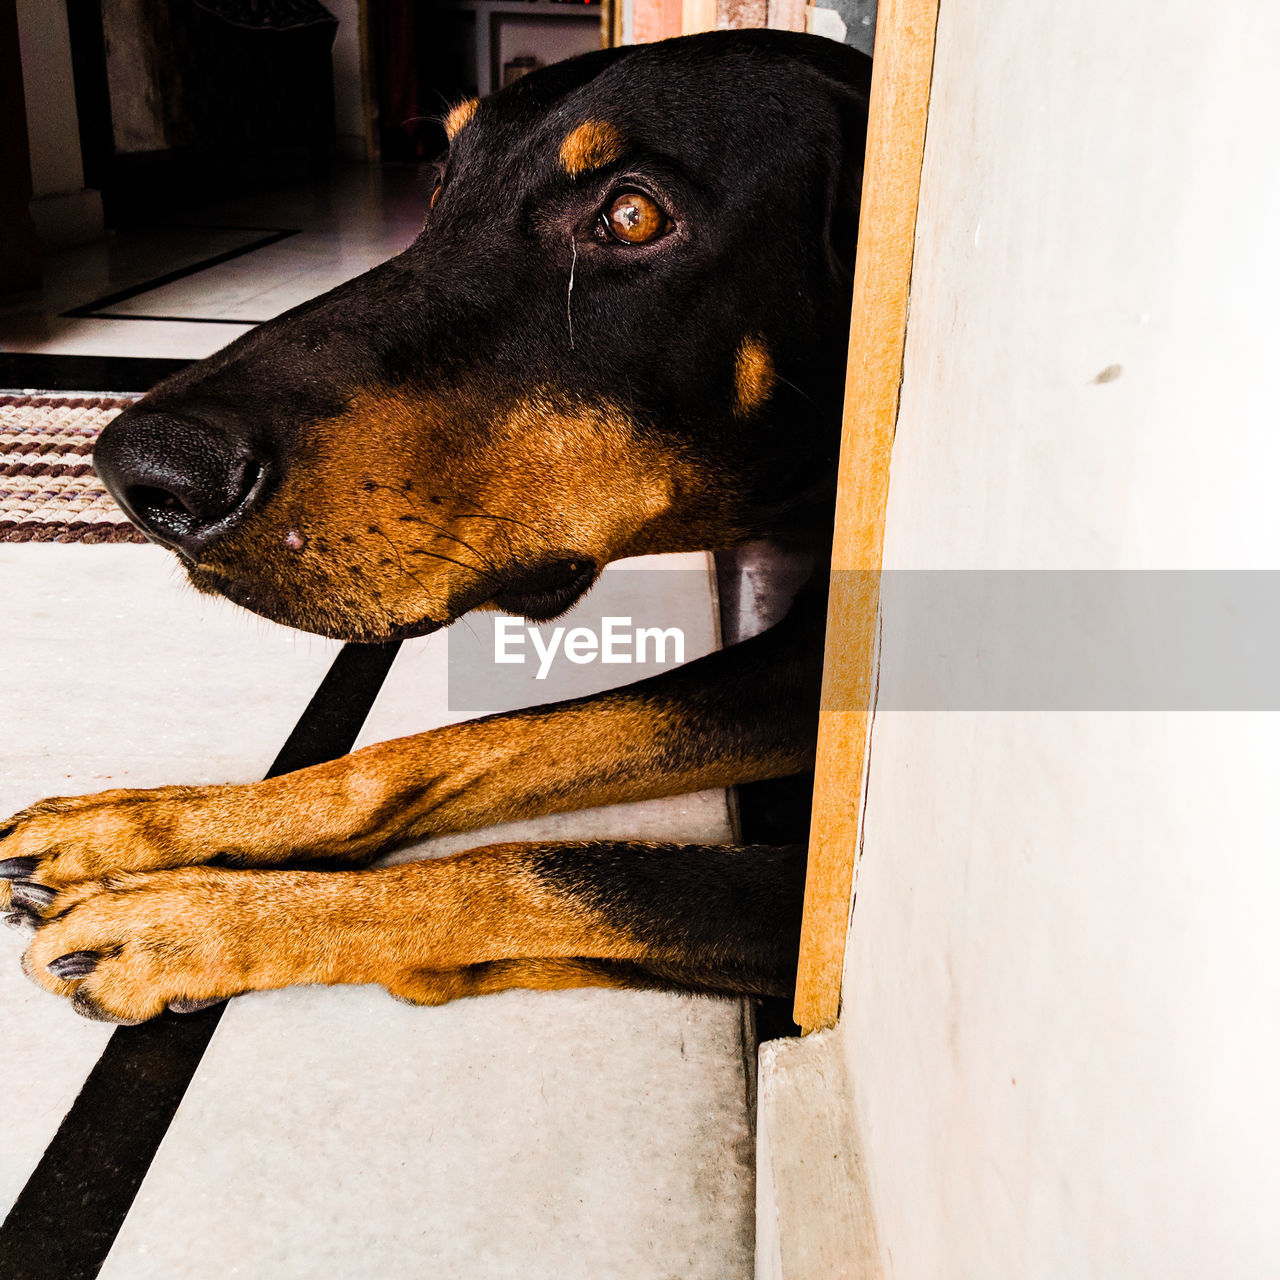 one animal, domestic animals, domestic, pets, mammal, animal themes, animal, dog, canine, vertebrate, no people, looking, close-up, black color, indoors, looking away, day, relaxation, side view, portrait, animal head, purebred dog, animal mouth